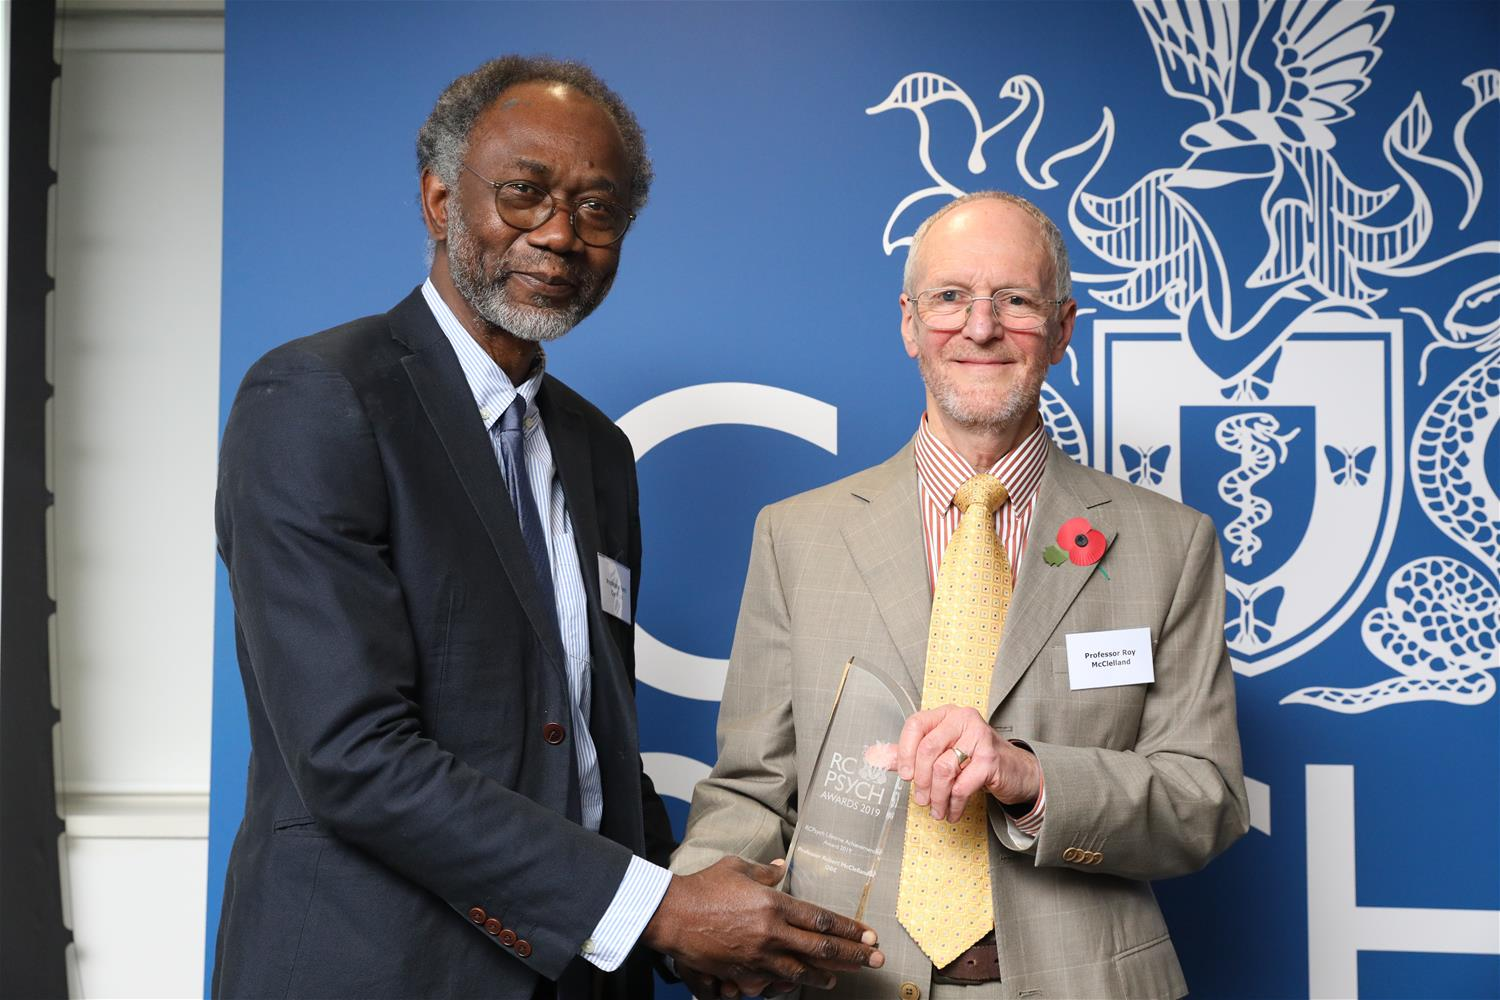 Professor Roy McClelland receives Lifetime Achievement Award from the Royal College of Psychiatrists